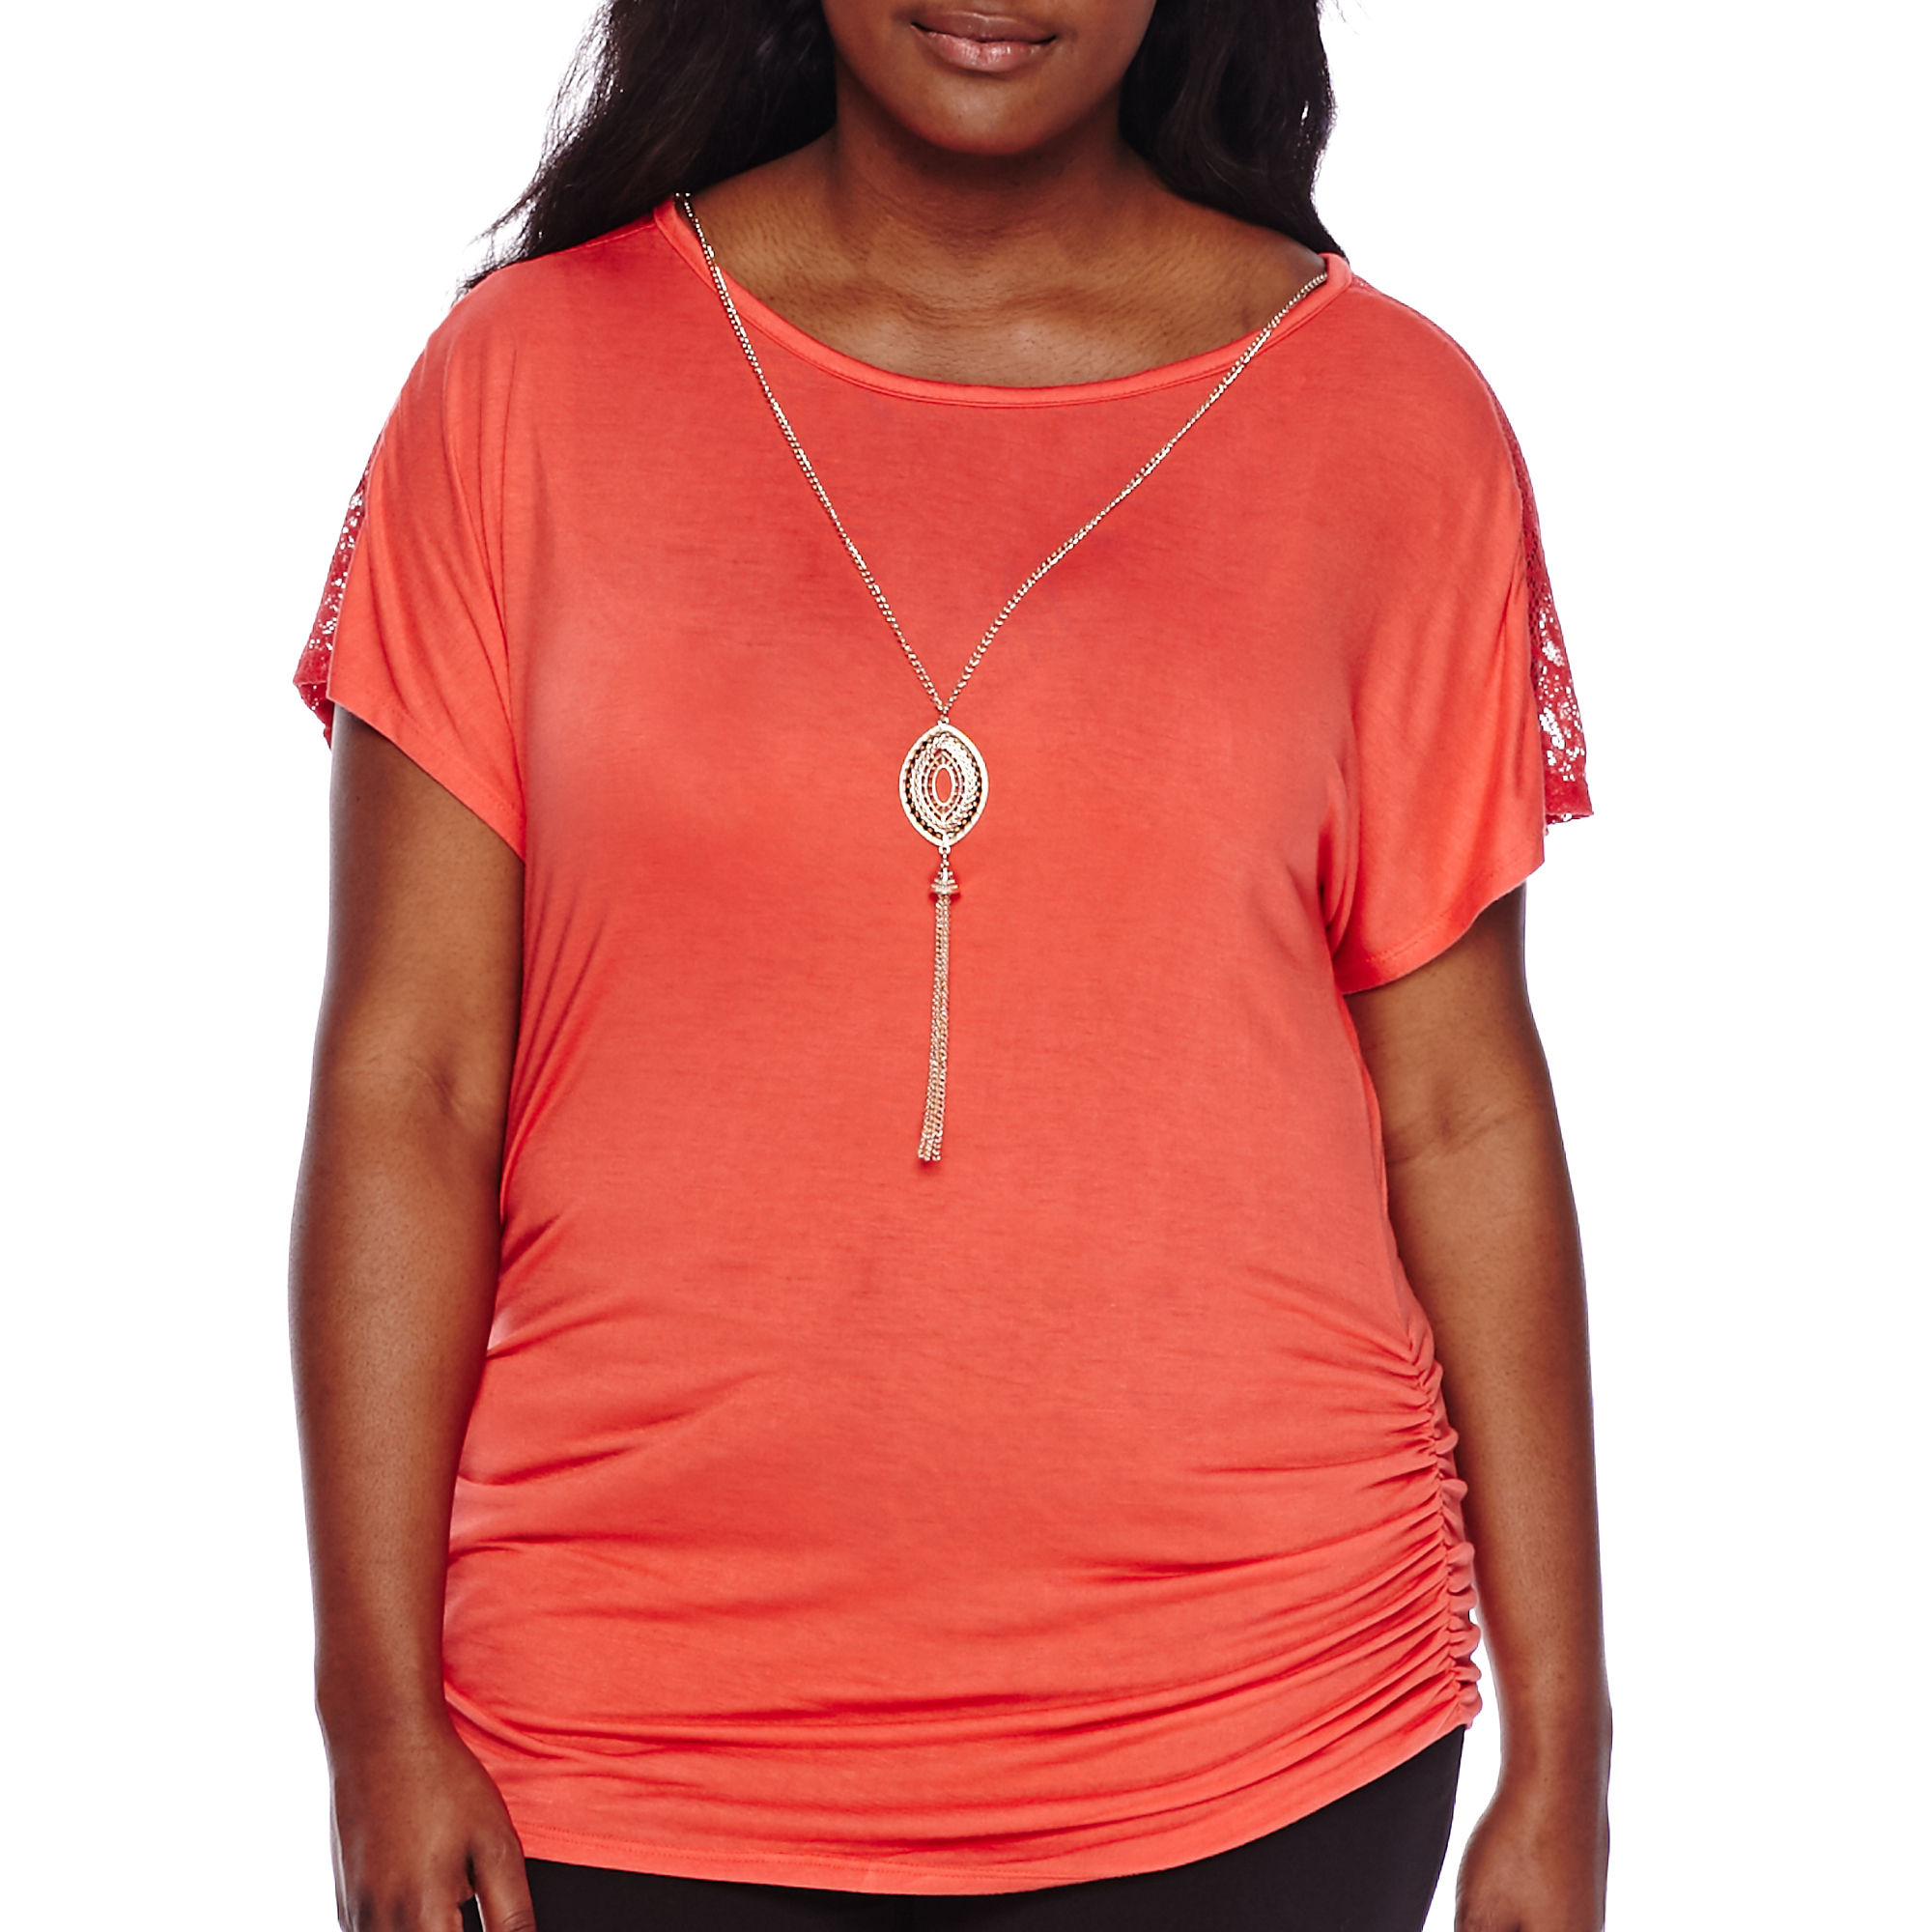 by & by Plus Short-Sleeve Crochet Inset Necklace Top - Juniors Plus